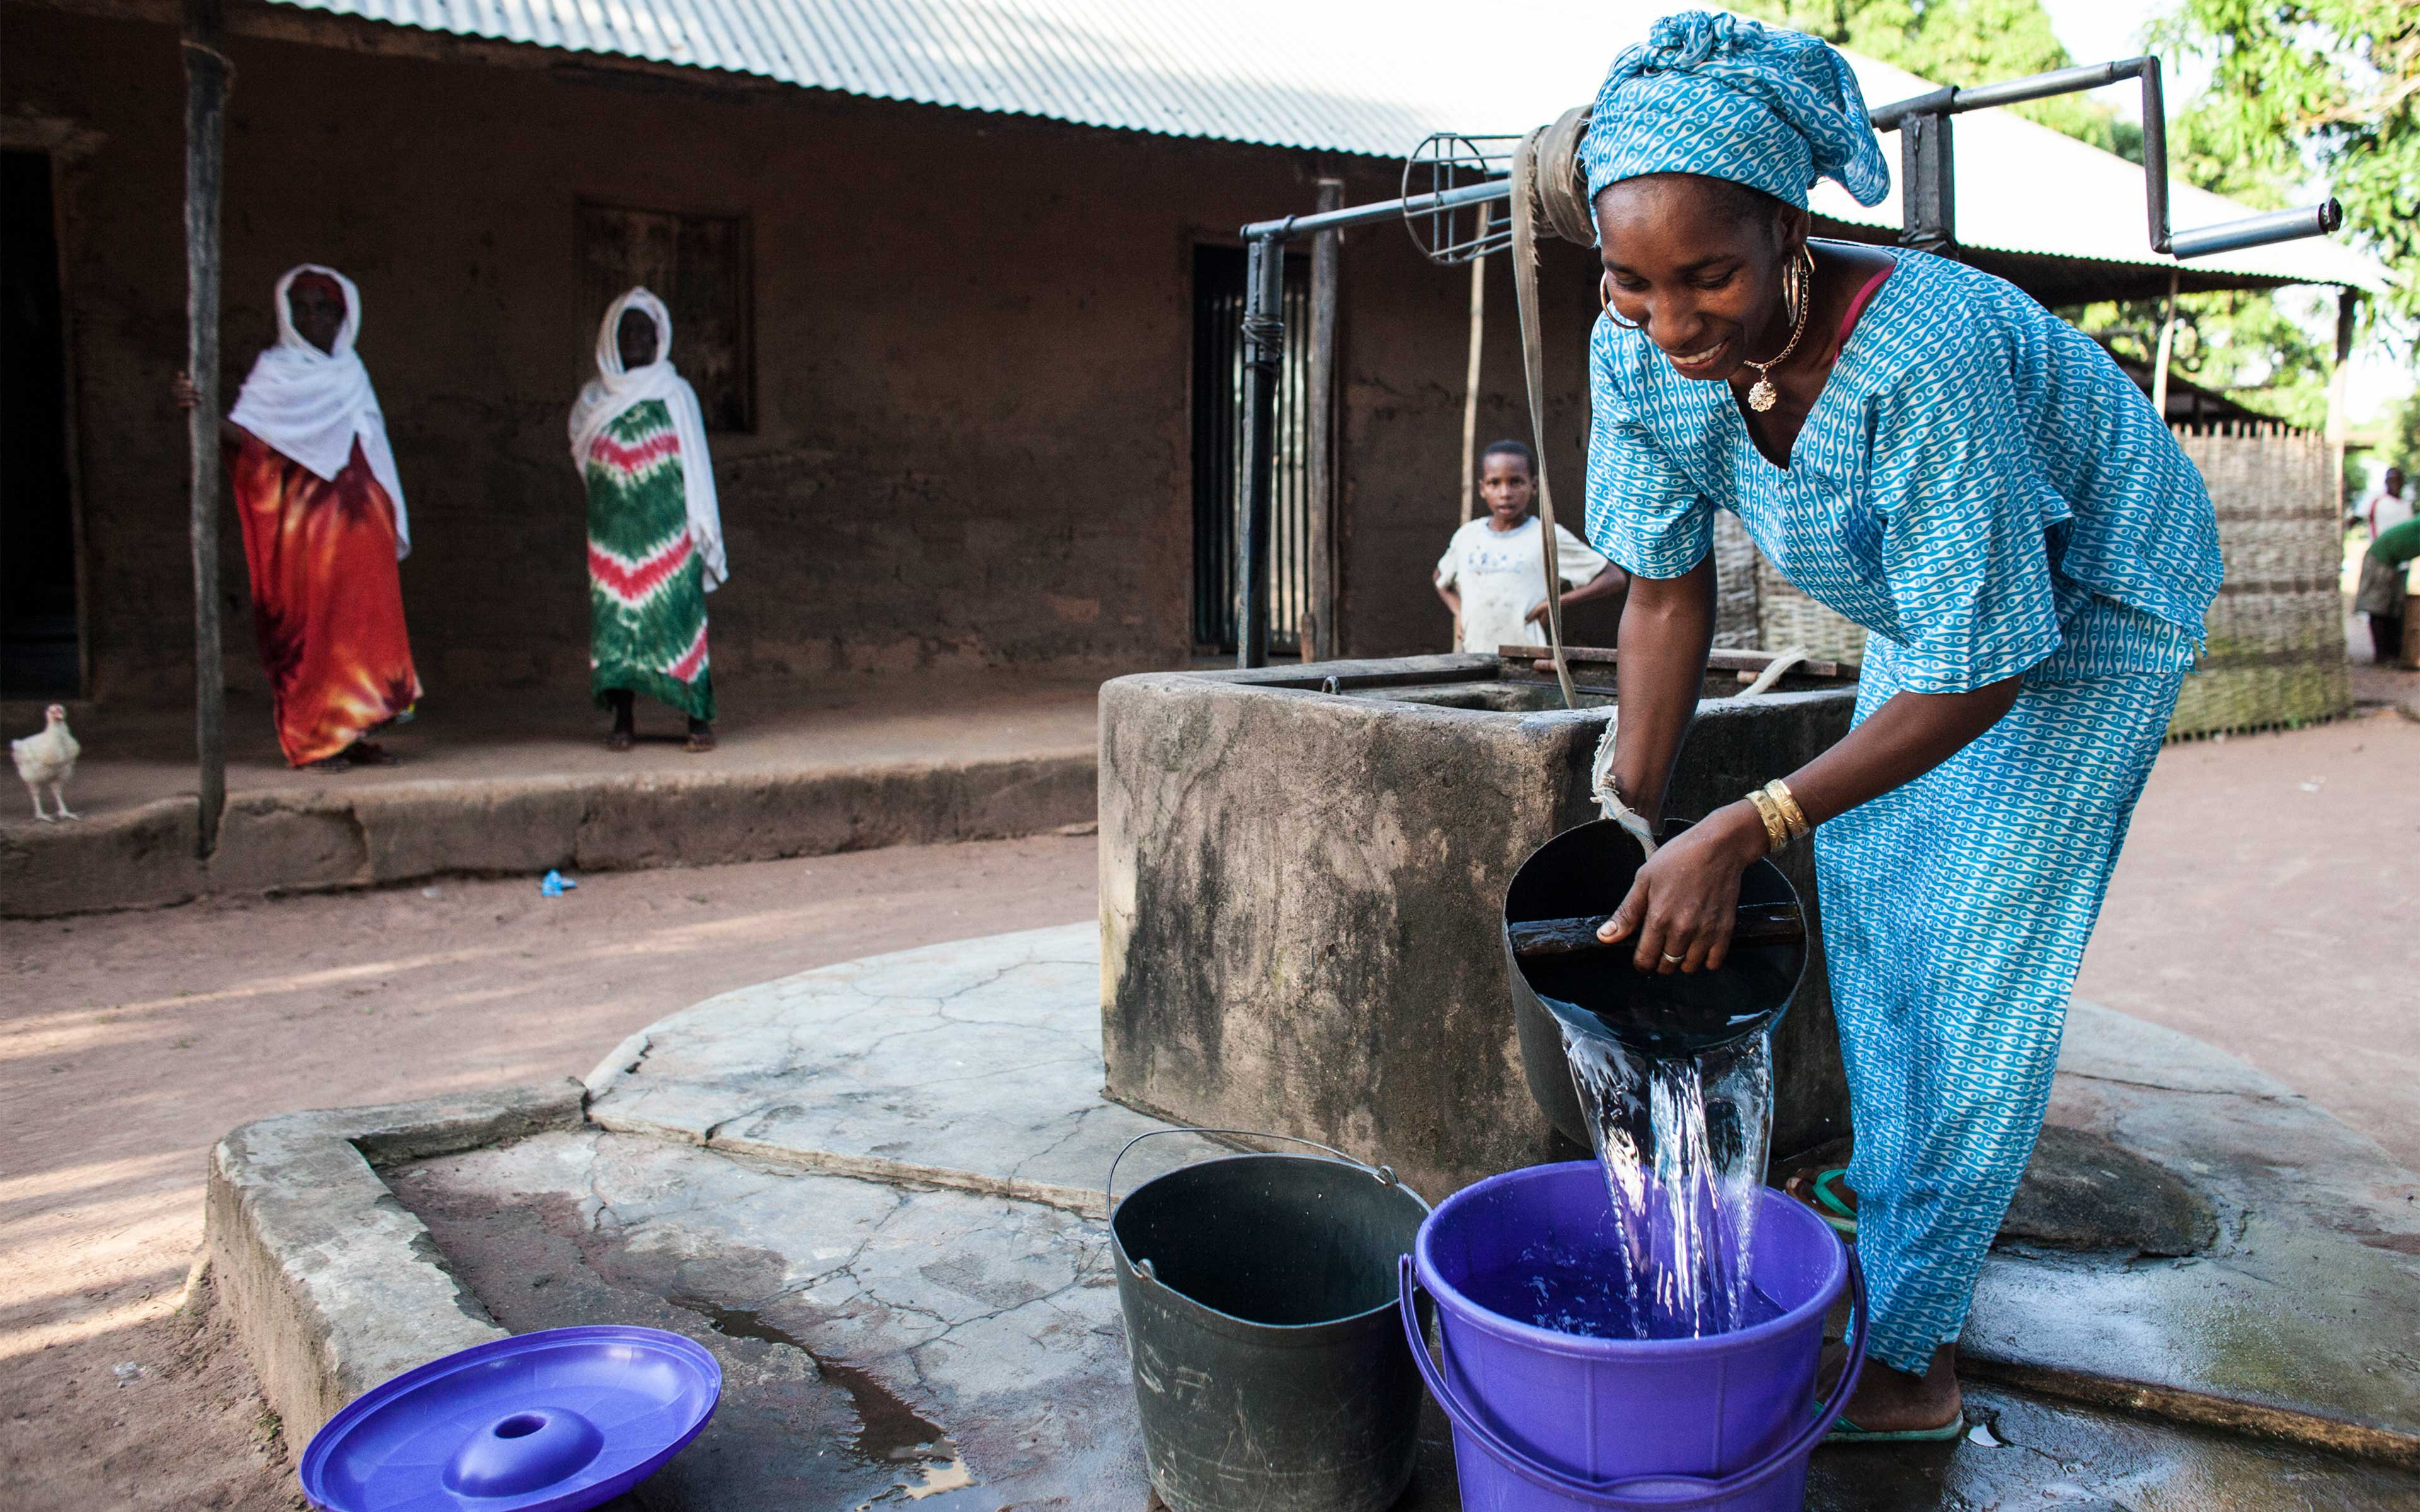 Ussai Balde gathers water at a well in Cuntabane, Guinea-Bissau—a town that borders Ebola-affected Guinea. During the epidemic, NADEL provided hygiene kits to community members here, as well as border surveillance and information about Ebola prevention.